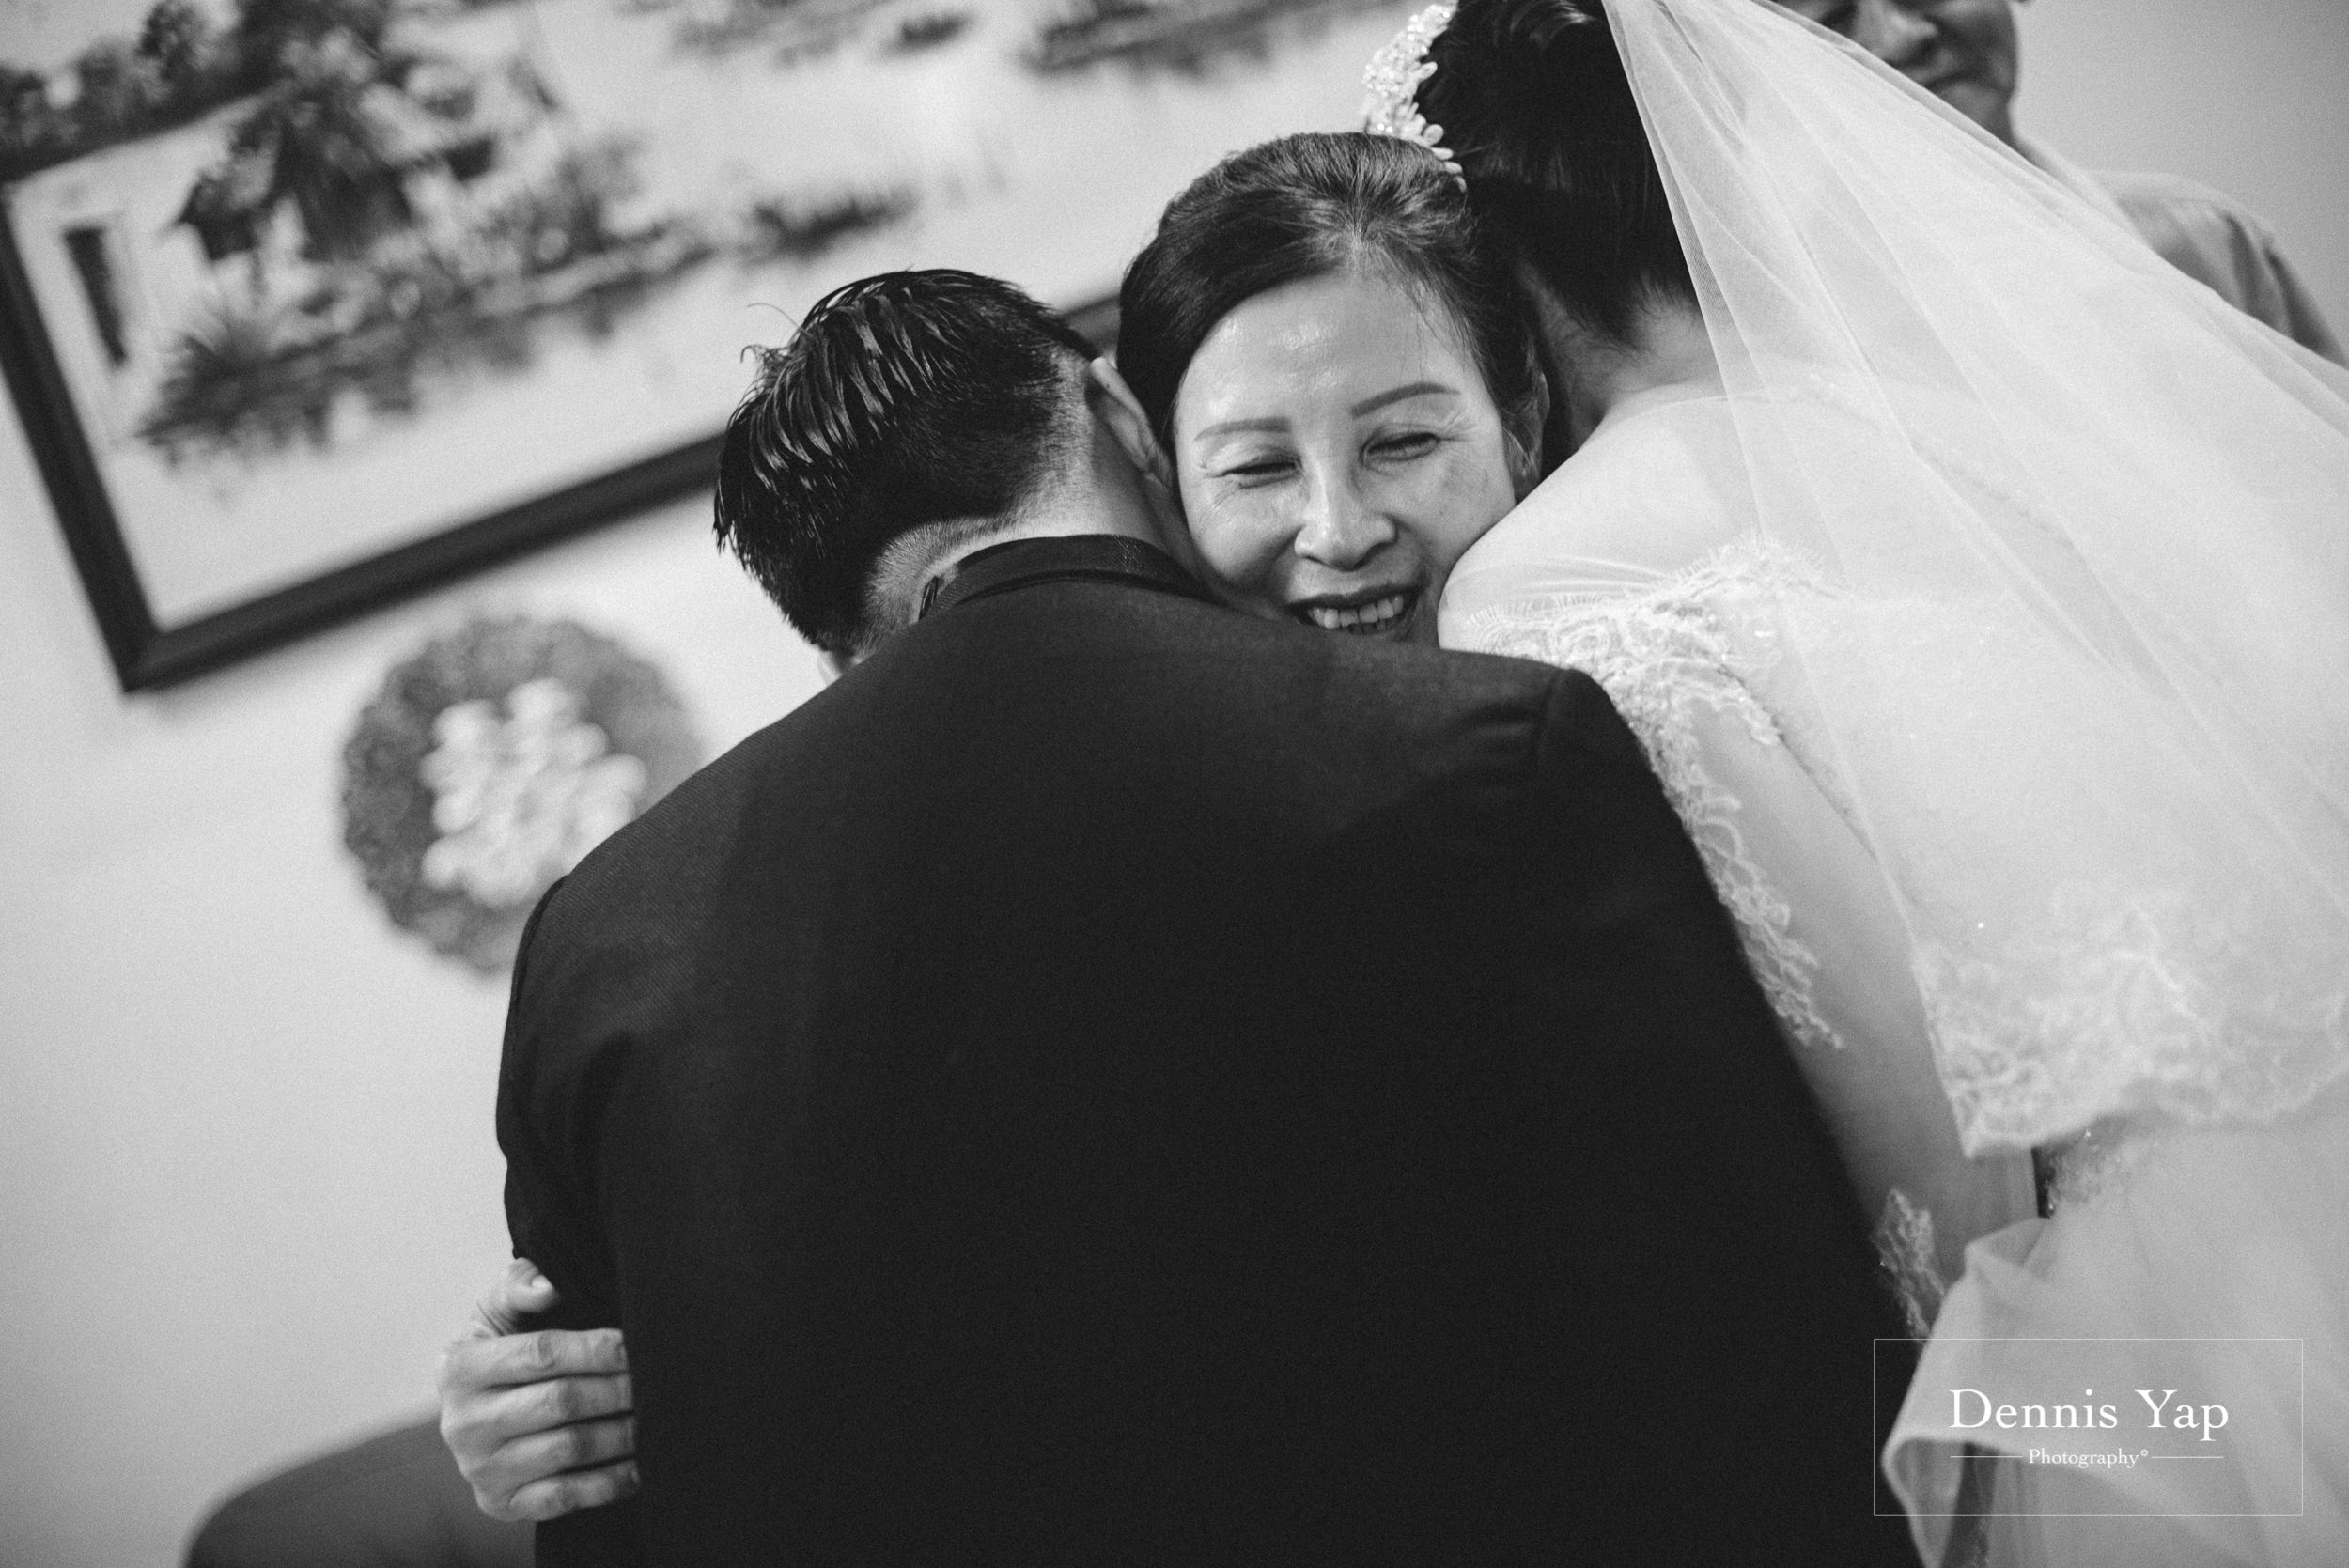 marcus emily wedding day gift exchange malaysia dennis yap photography-15.jpg